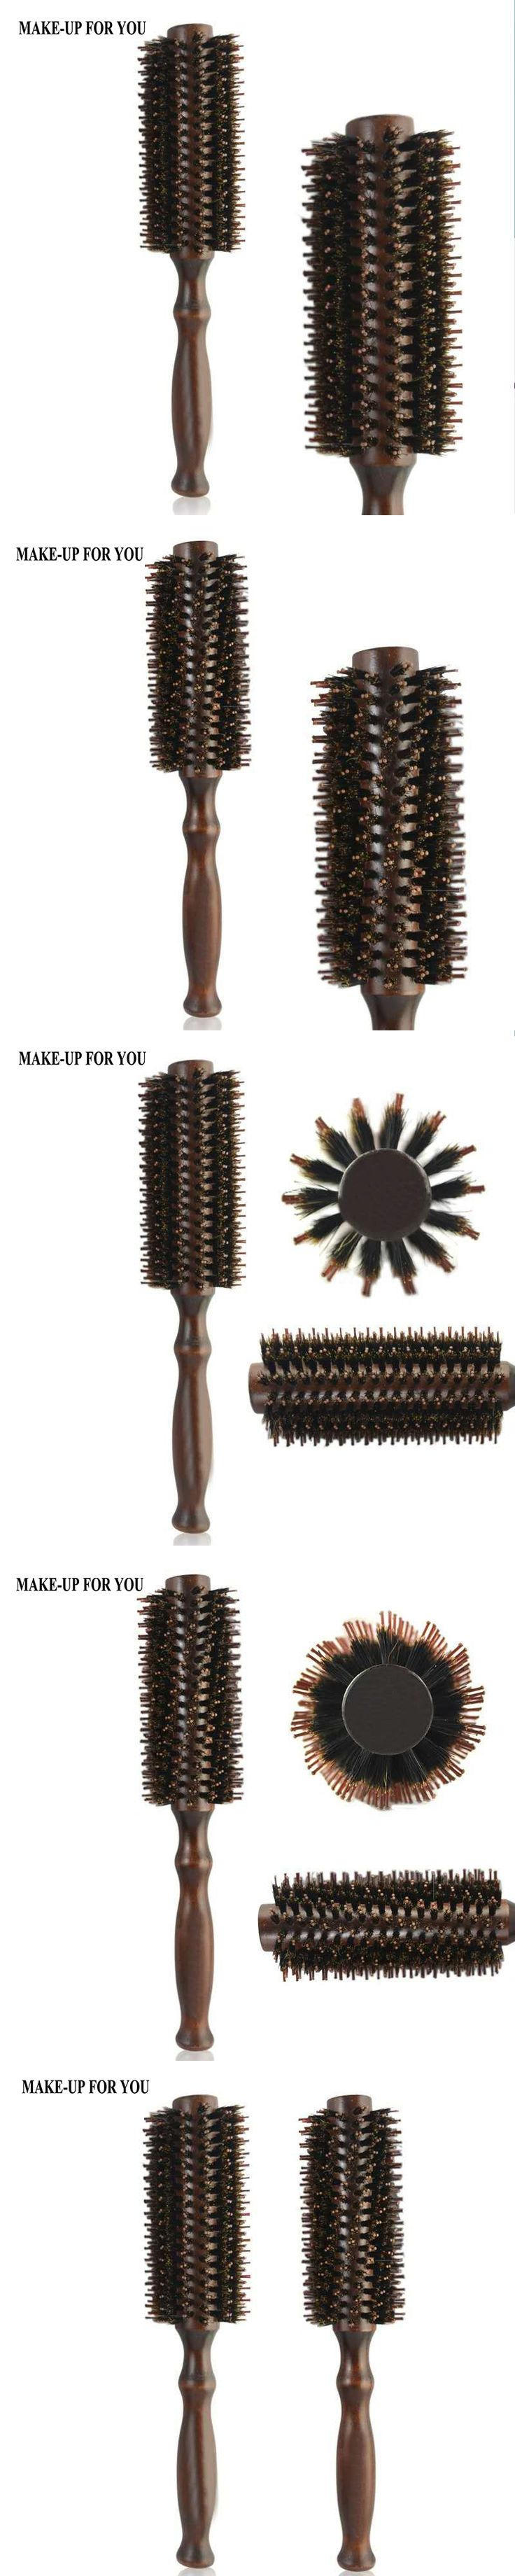 Roll Round Hair Comb Brush Care Tool Wood Handle Natural pure Bristle Curly Hair Brush Fluffy Comb Hairdressing Barber Tools